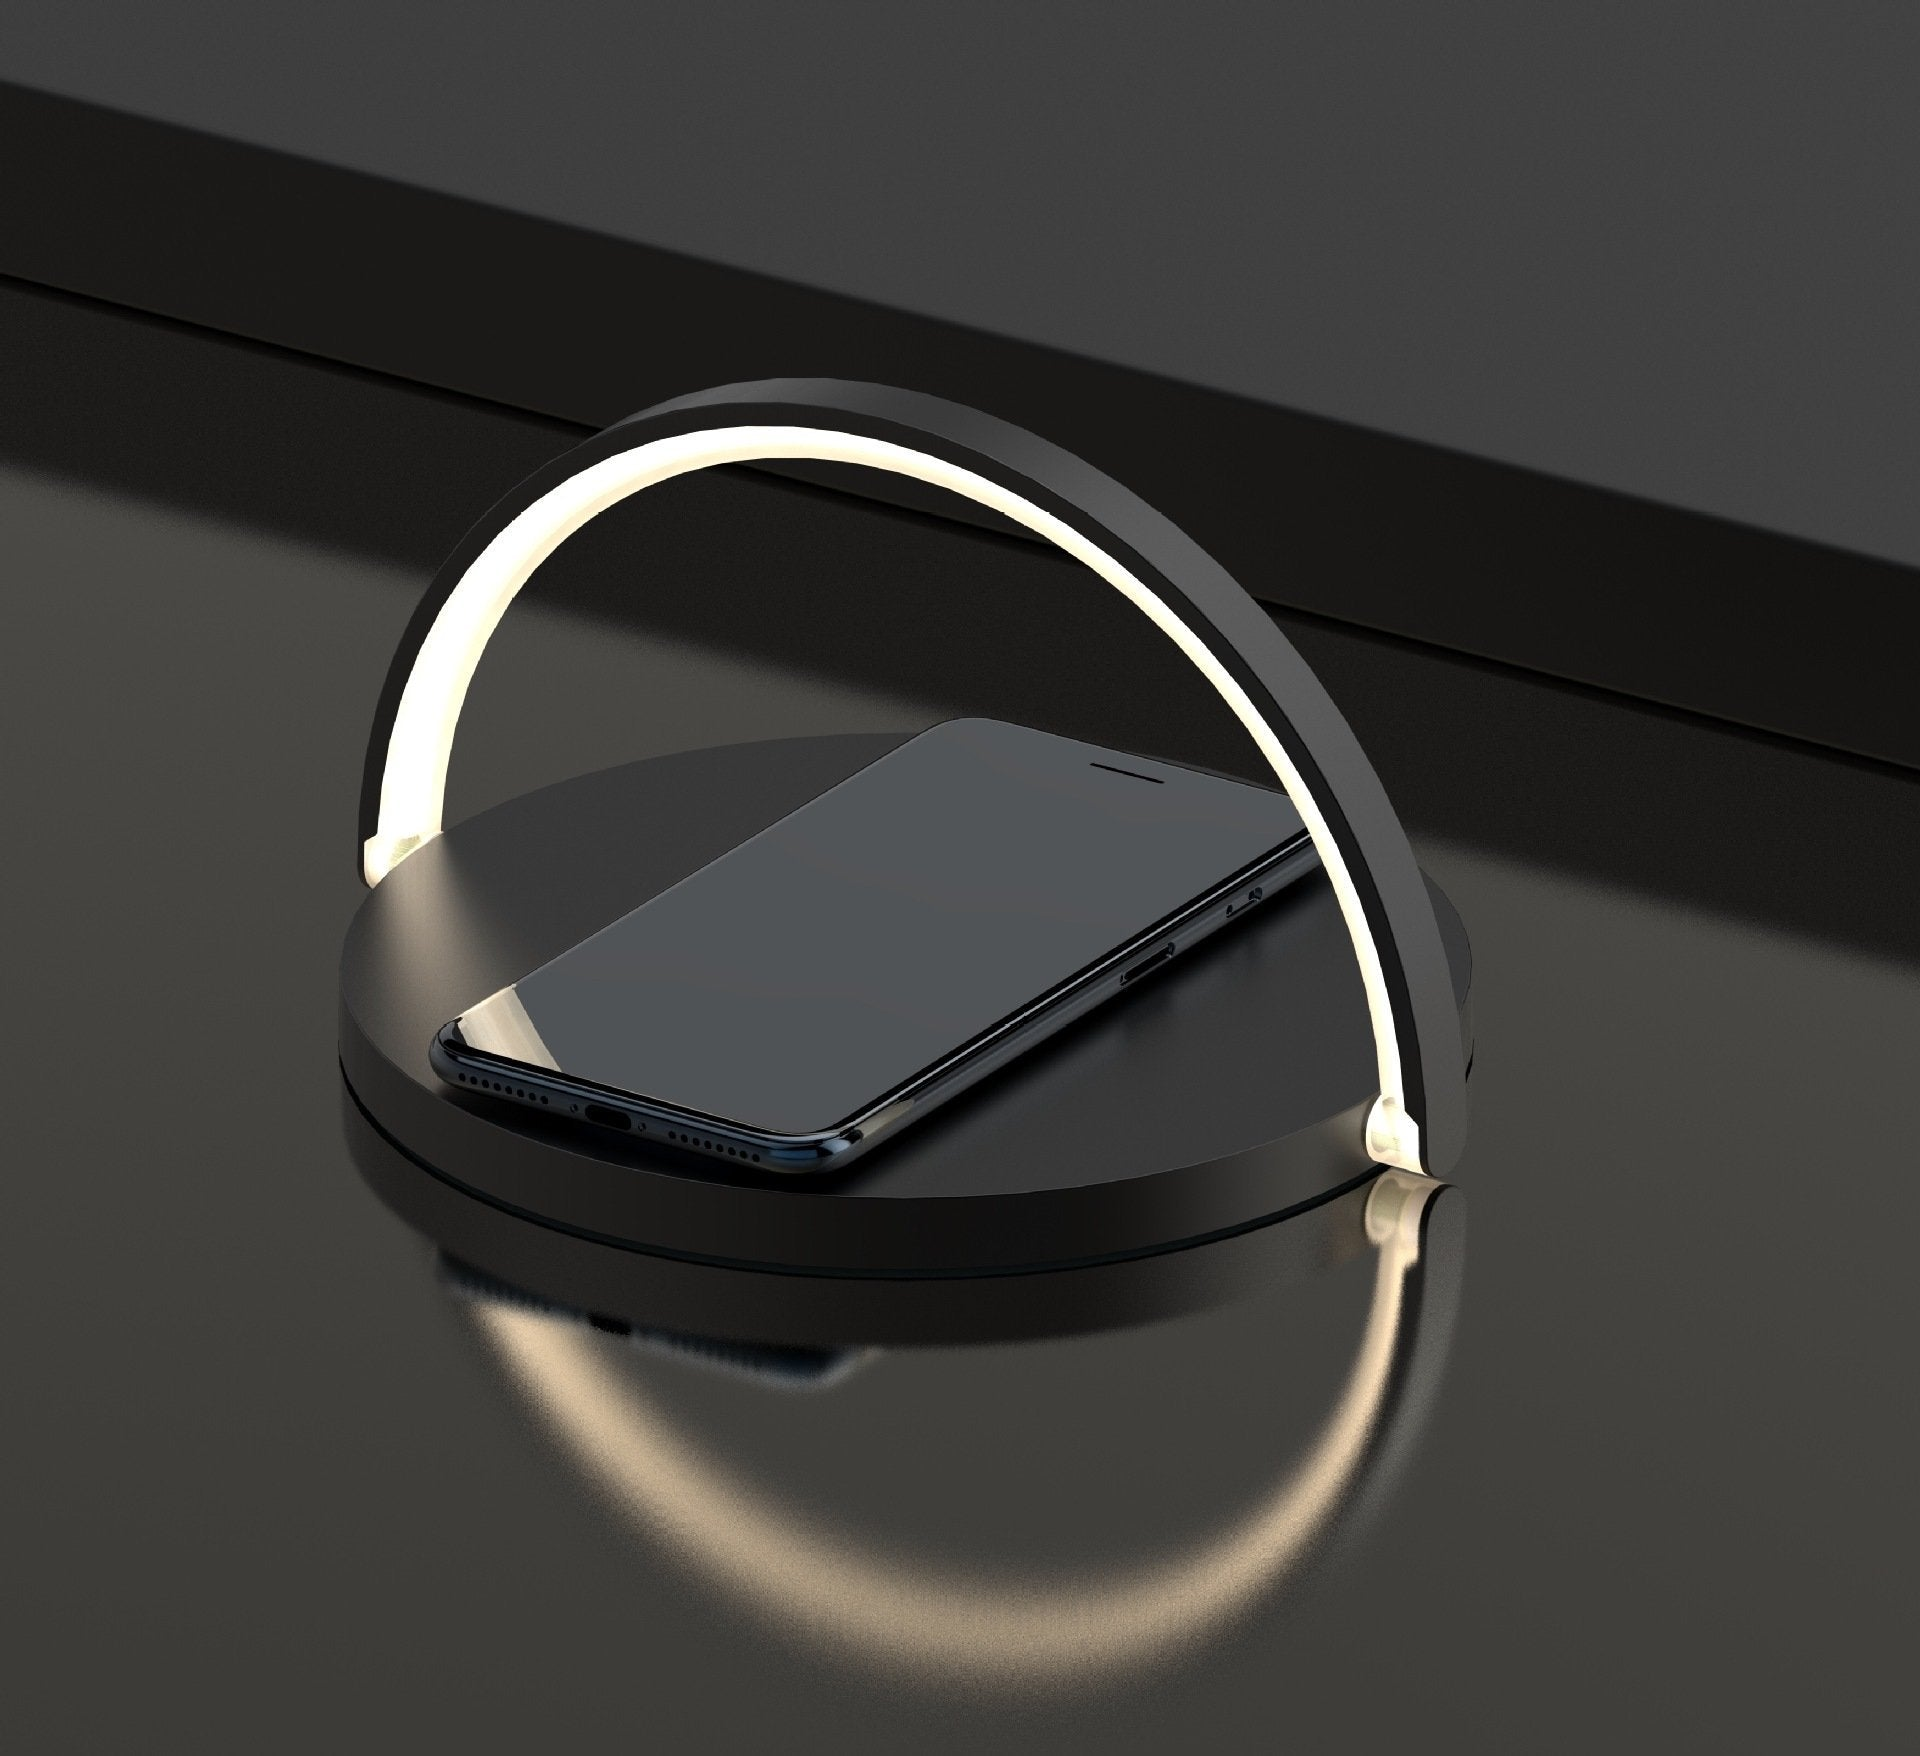 Wireless Charging Table Lamp for iPhone/Android/Smartphones - Night Light LED - LuxMo